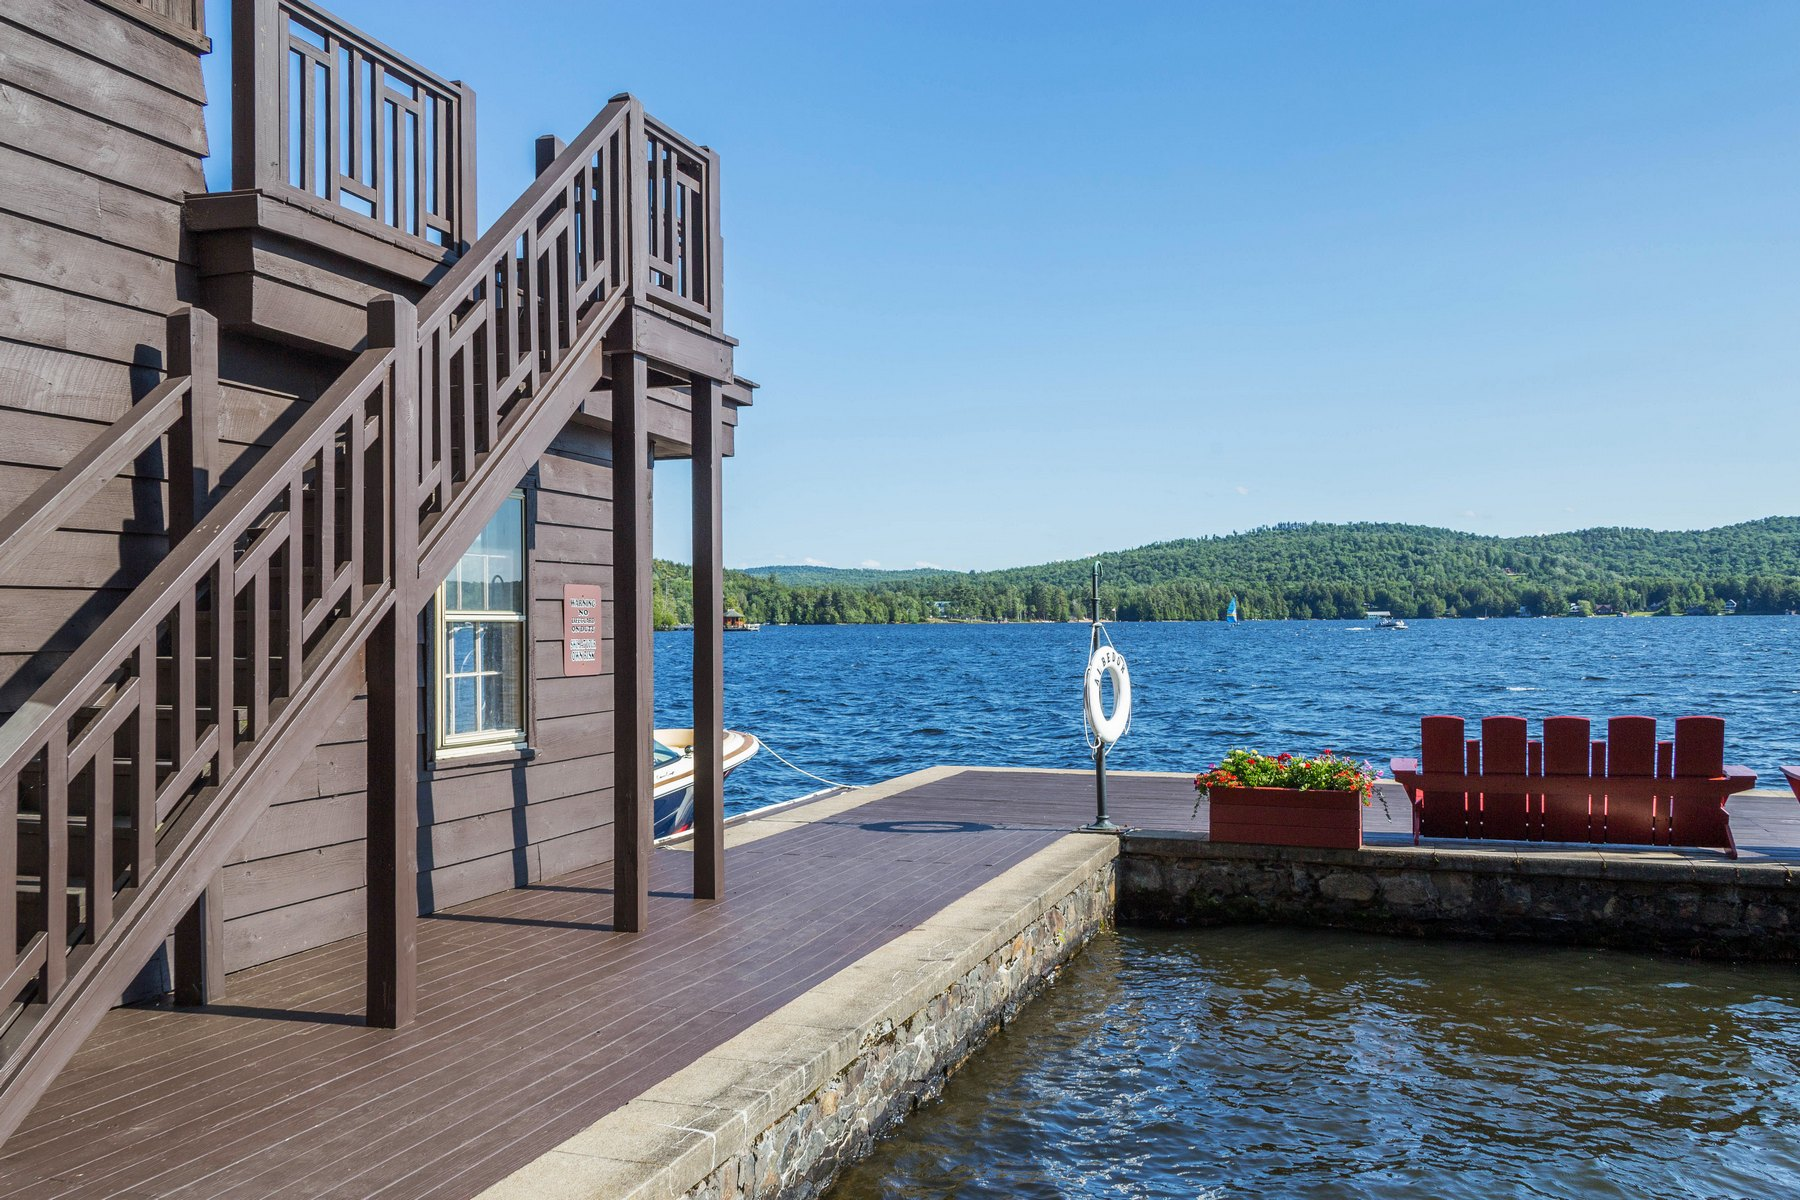 Additional photo for property listing at The Albedor 50  Ny 28 Inlet, New York 13331 United States